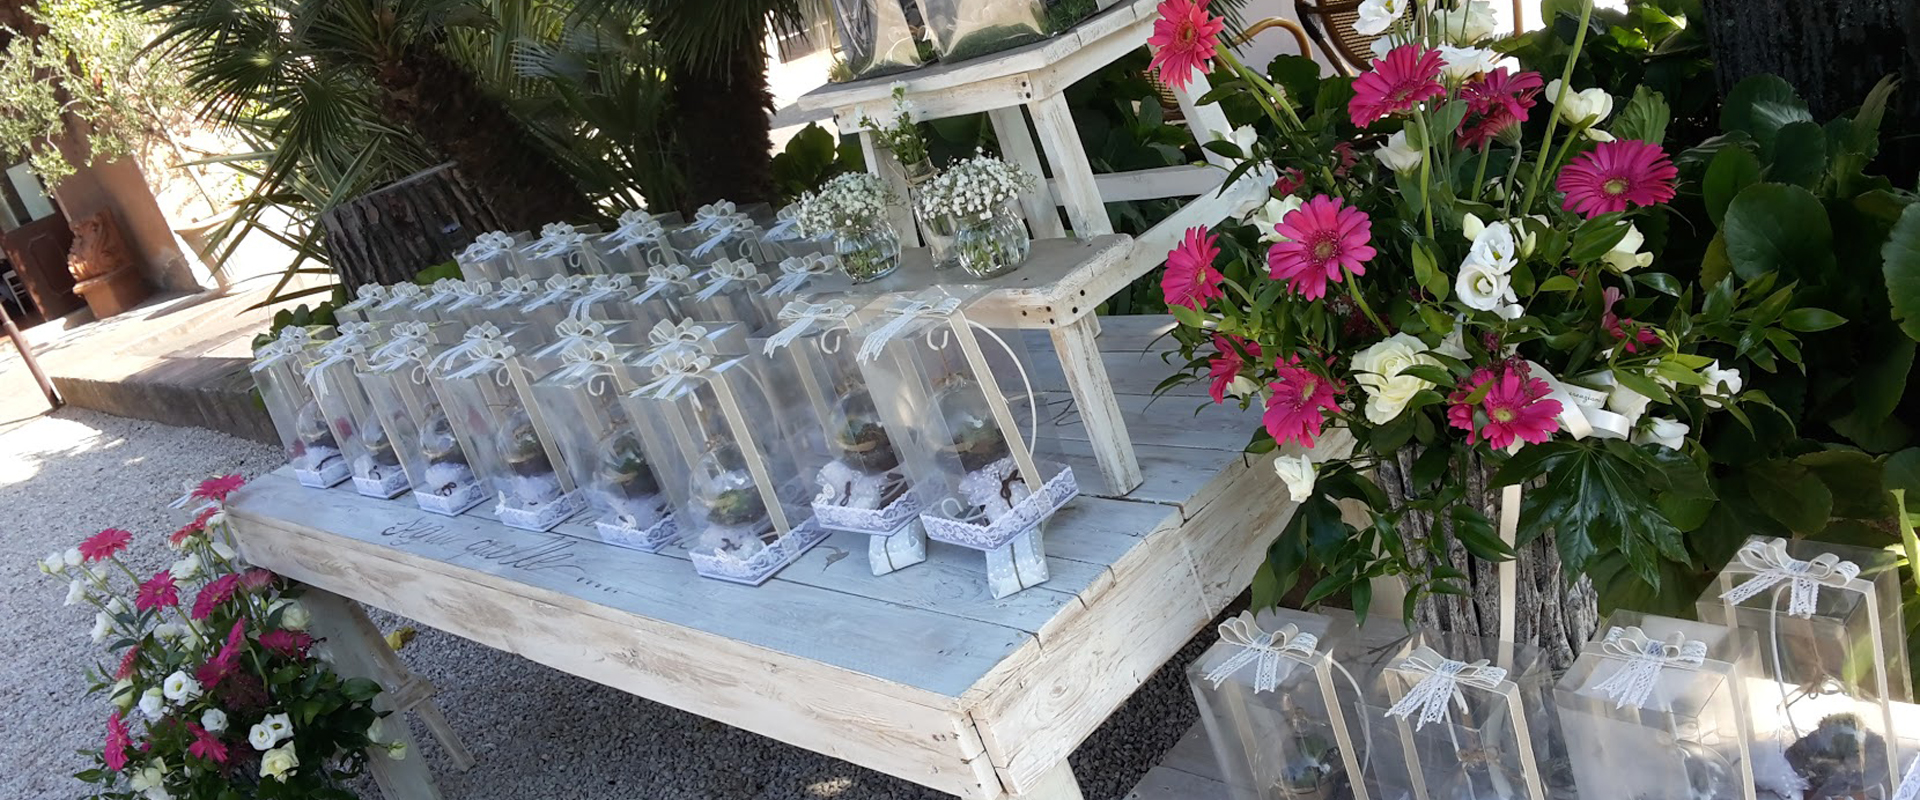 Servizio Wedding Planner Catering Roma Banqueting